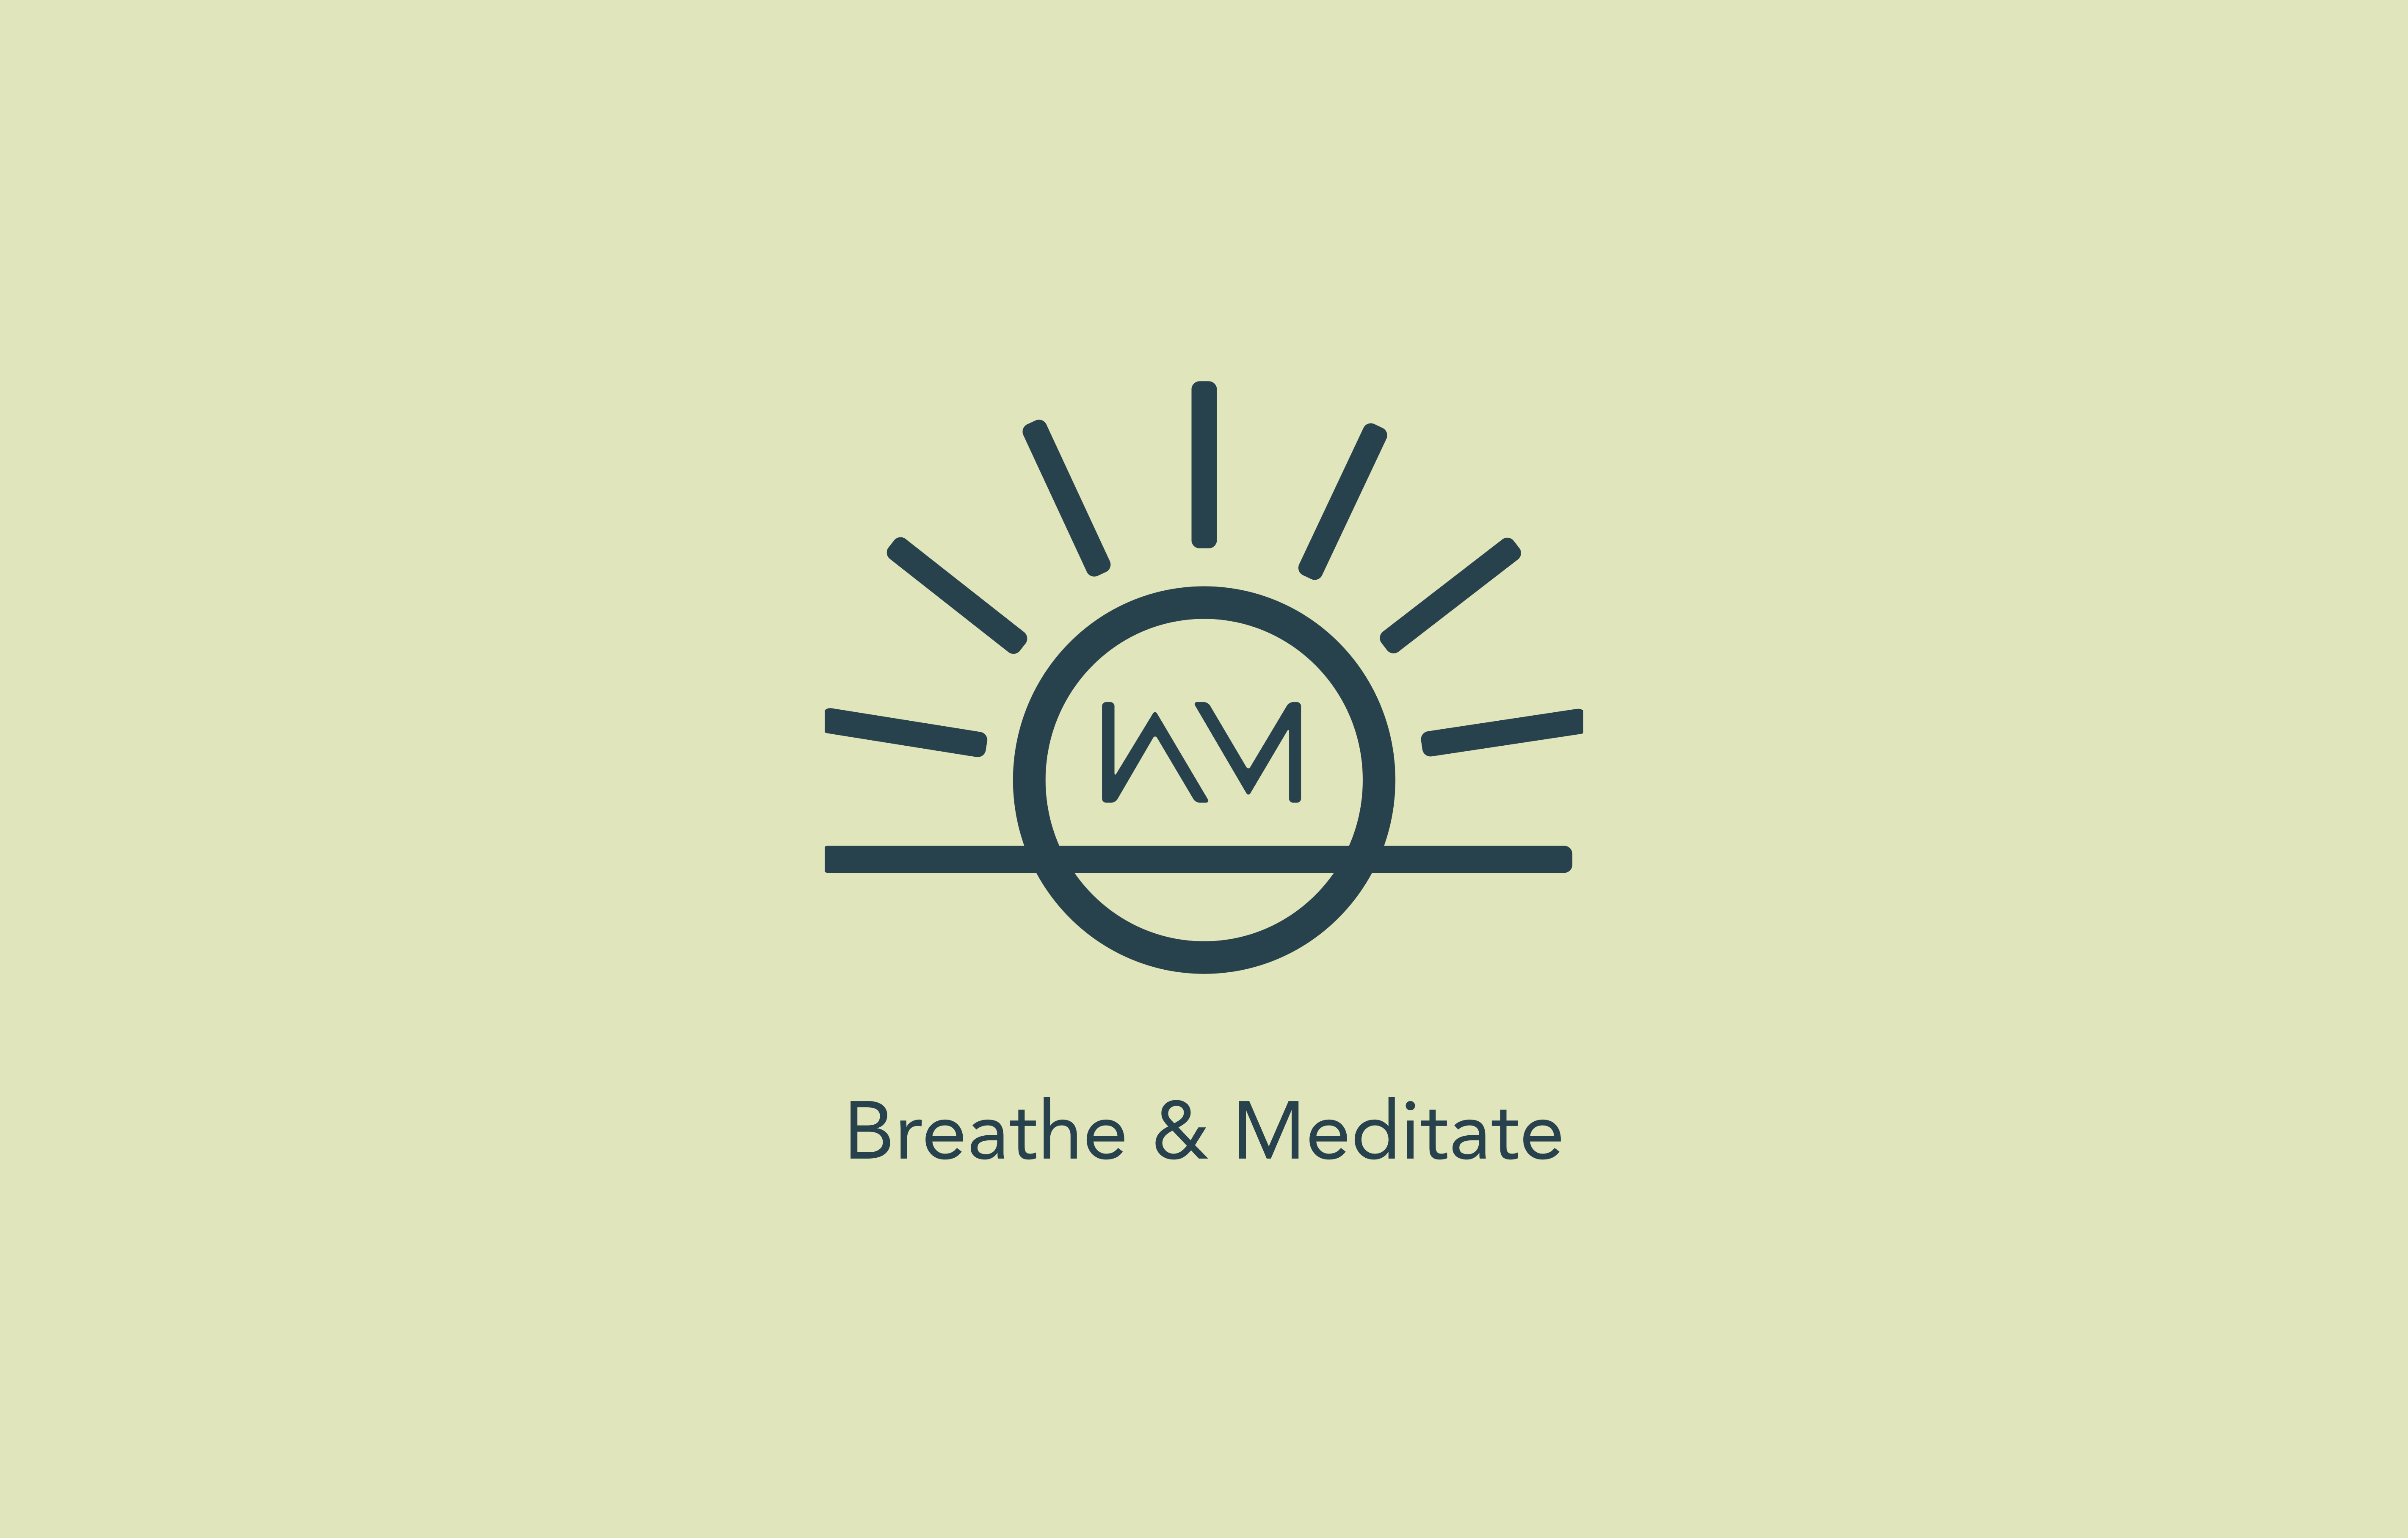 Breathe & Meditate